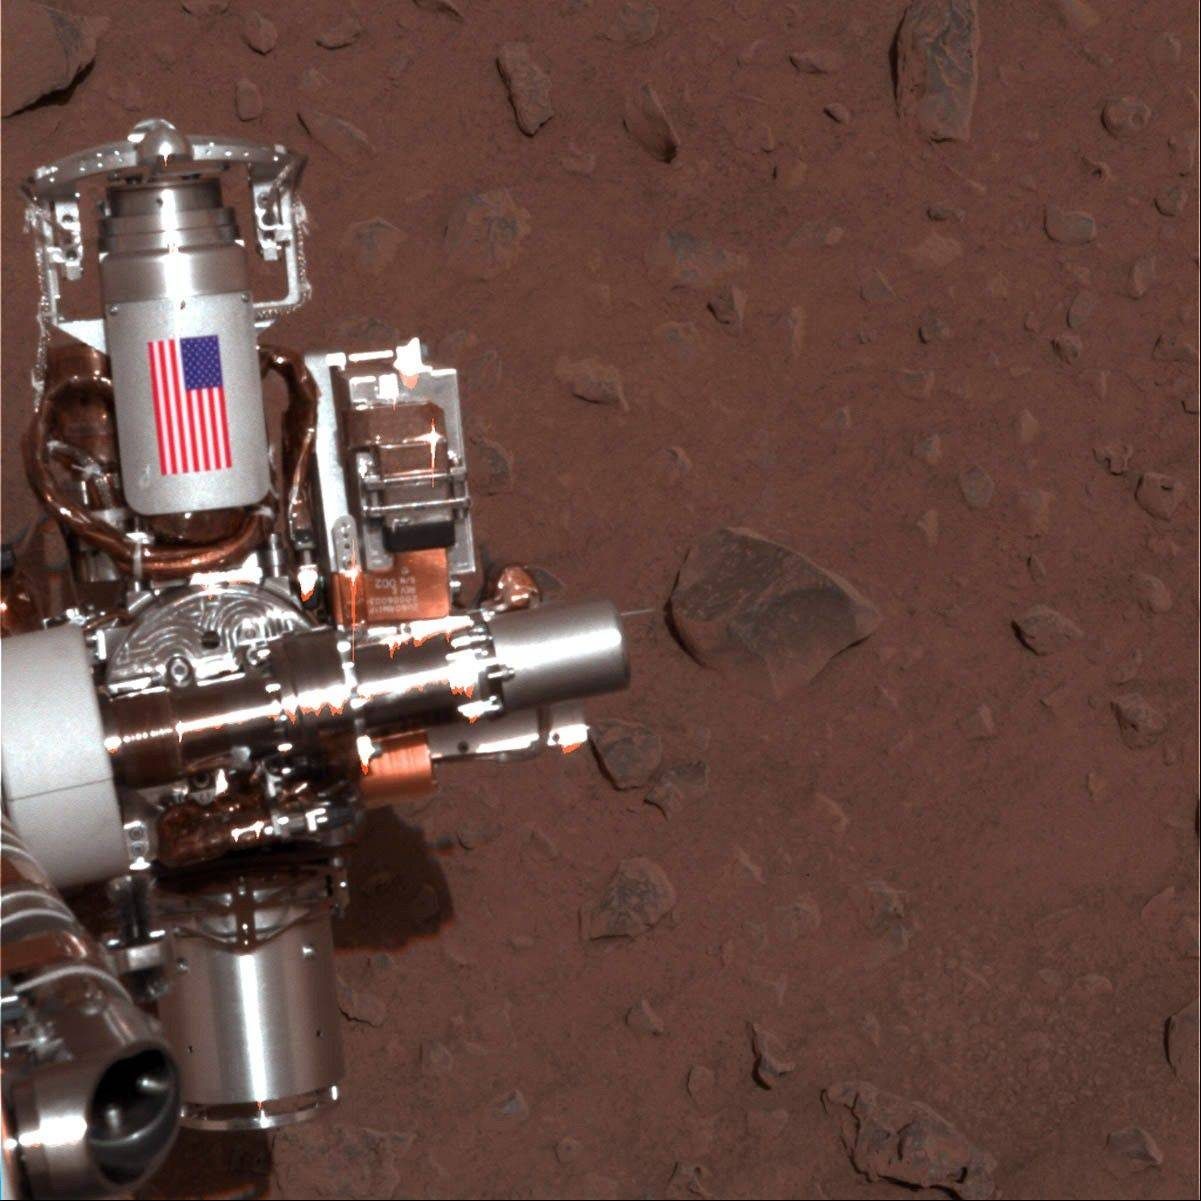 ASSOCIATED PRESS This image provided by NASA shows the piece of metal with the American flag on it is made of aluminum recovered from the site of the World Trade Center towers in New York City on Mars Rover Spirit that serves as a cable guard for Spiritís rock abrasion tool as well as a memorial to the victims of the Sept. 11, 2001, terrorist attacks.